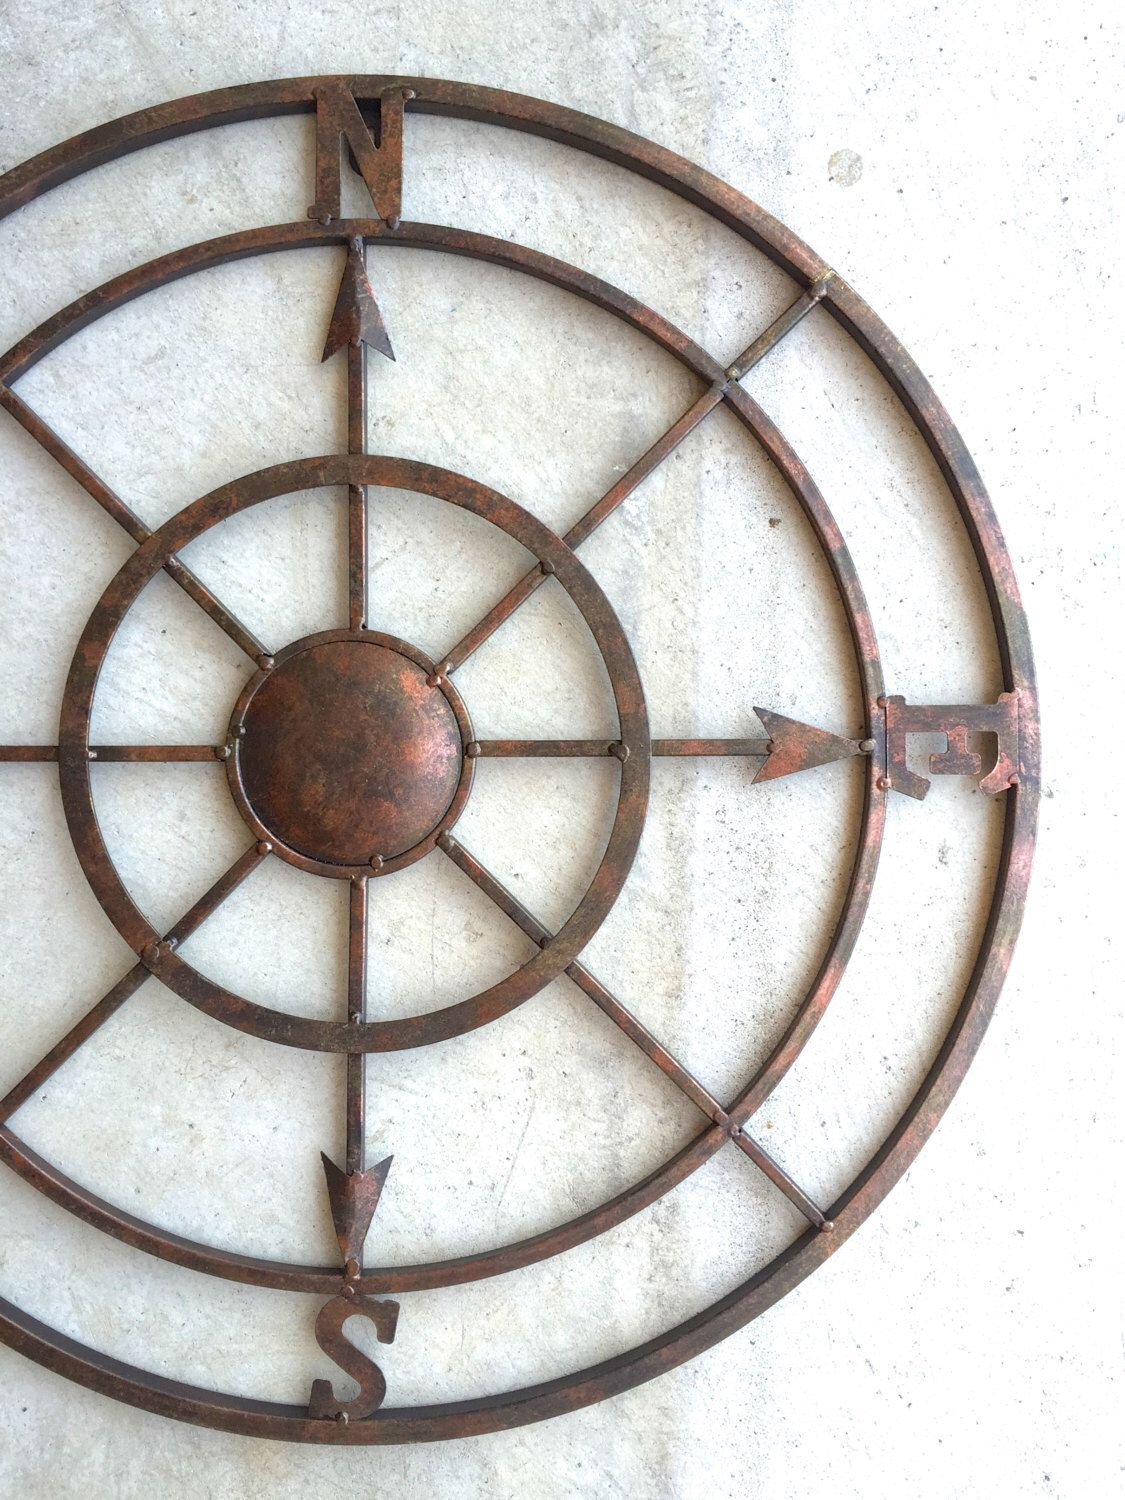 Rustic Outdoor Metal Wall Art Pin By Mayra R On B2 Decor Nautical Wall Decor Compass